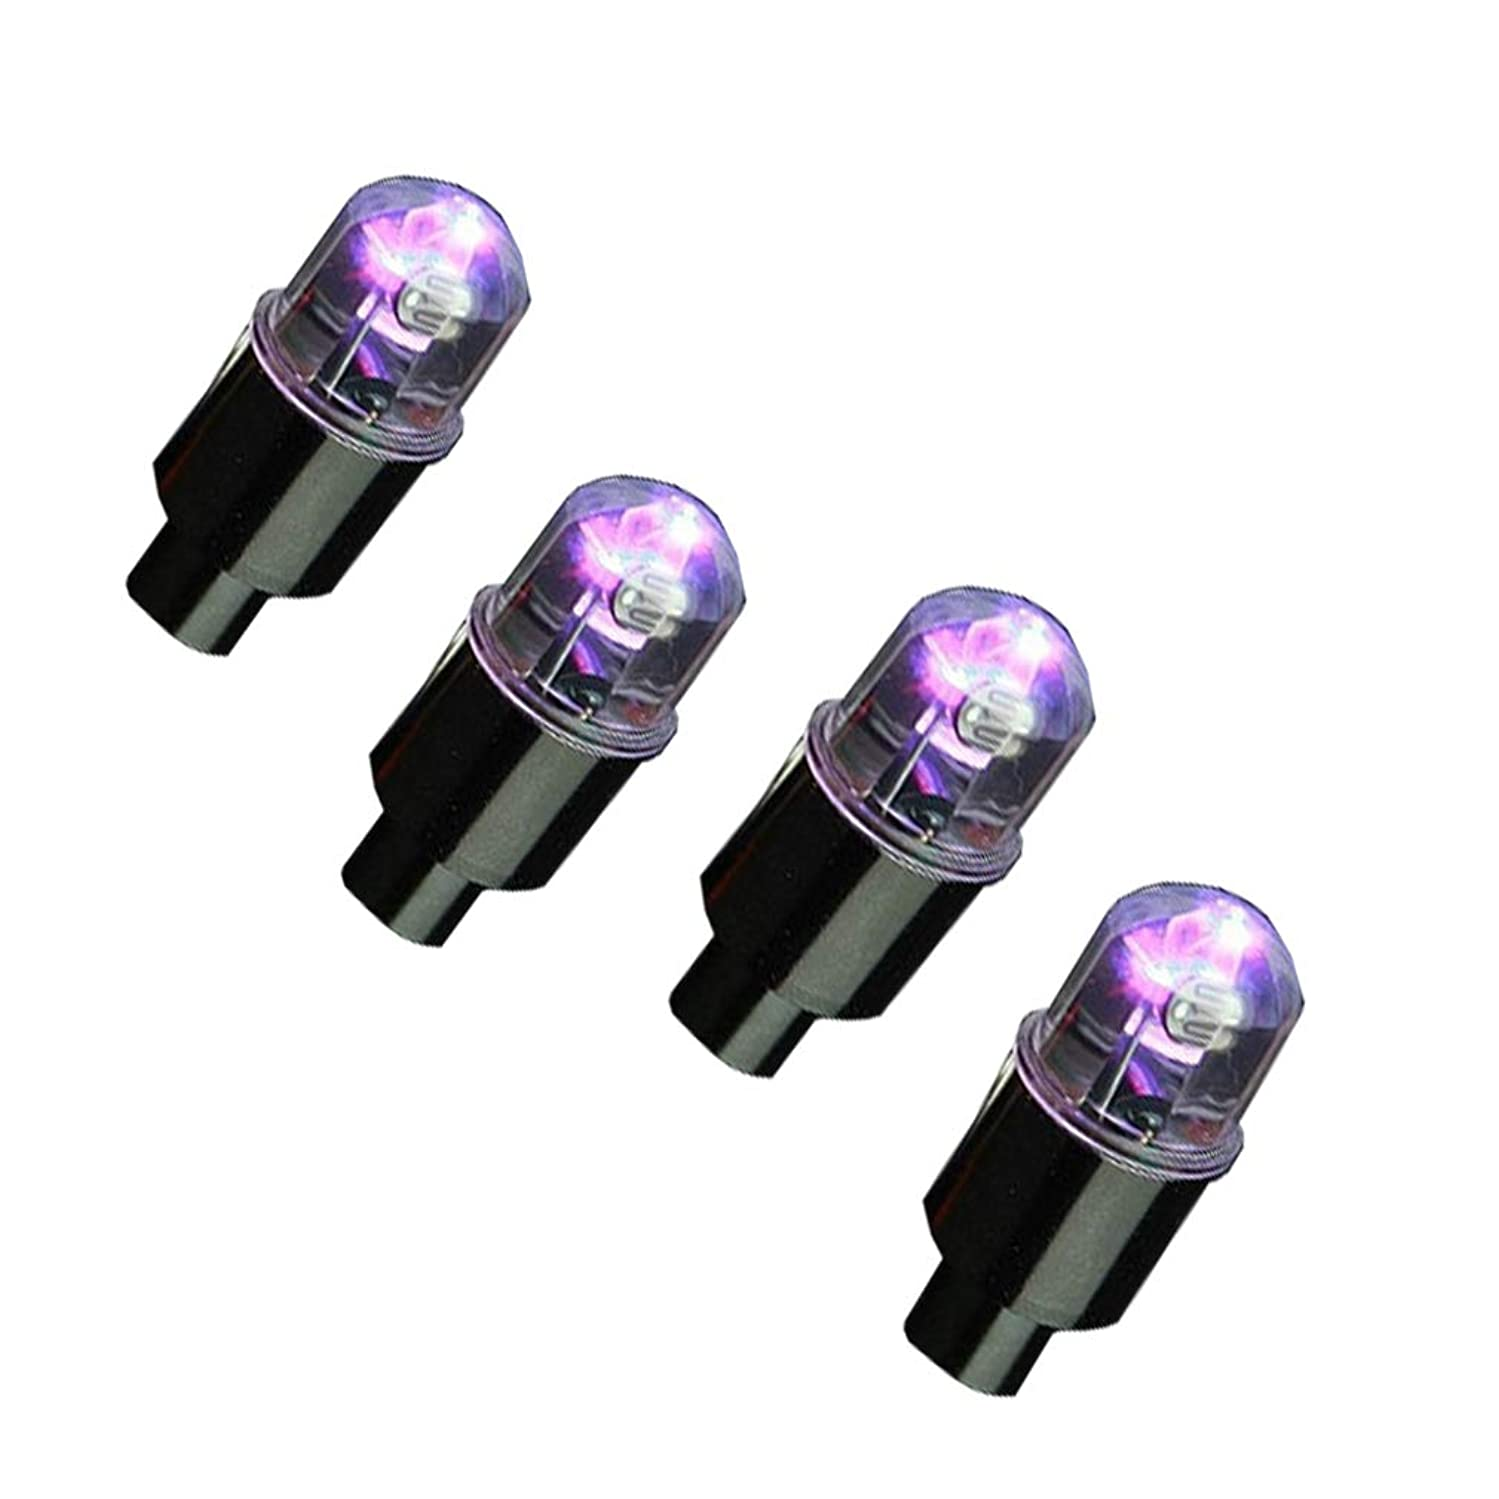 EKYAOMEI 4 Pack LED Automatic Flash Neon Air Valve Light Lamp Tyre Wheel Tire Valve Stem Cap Cover for Cars Cycling (Green)